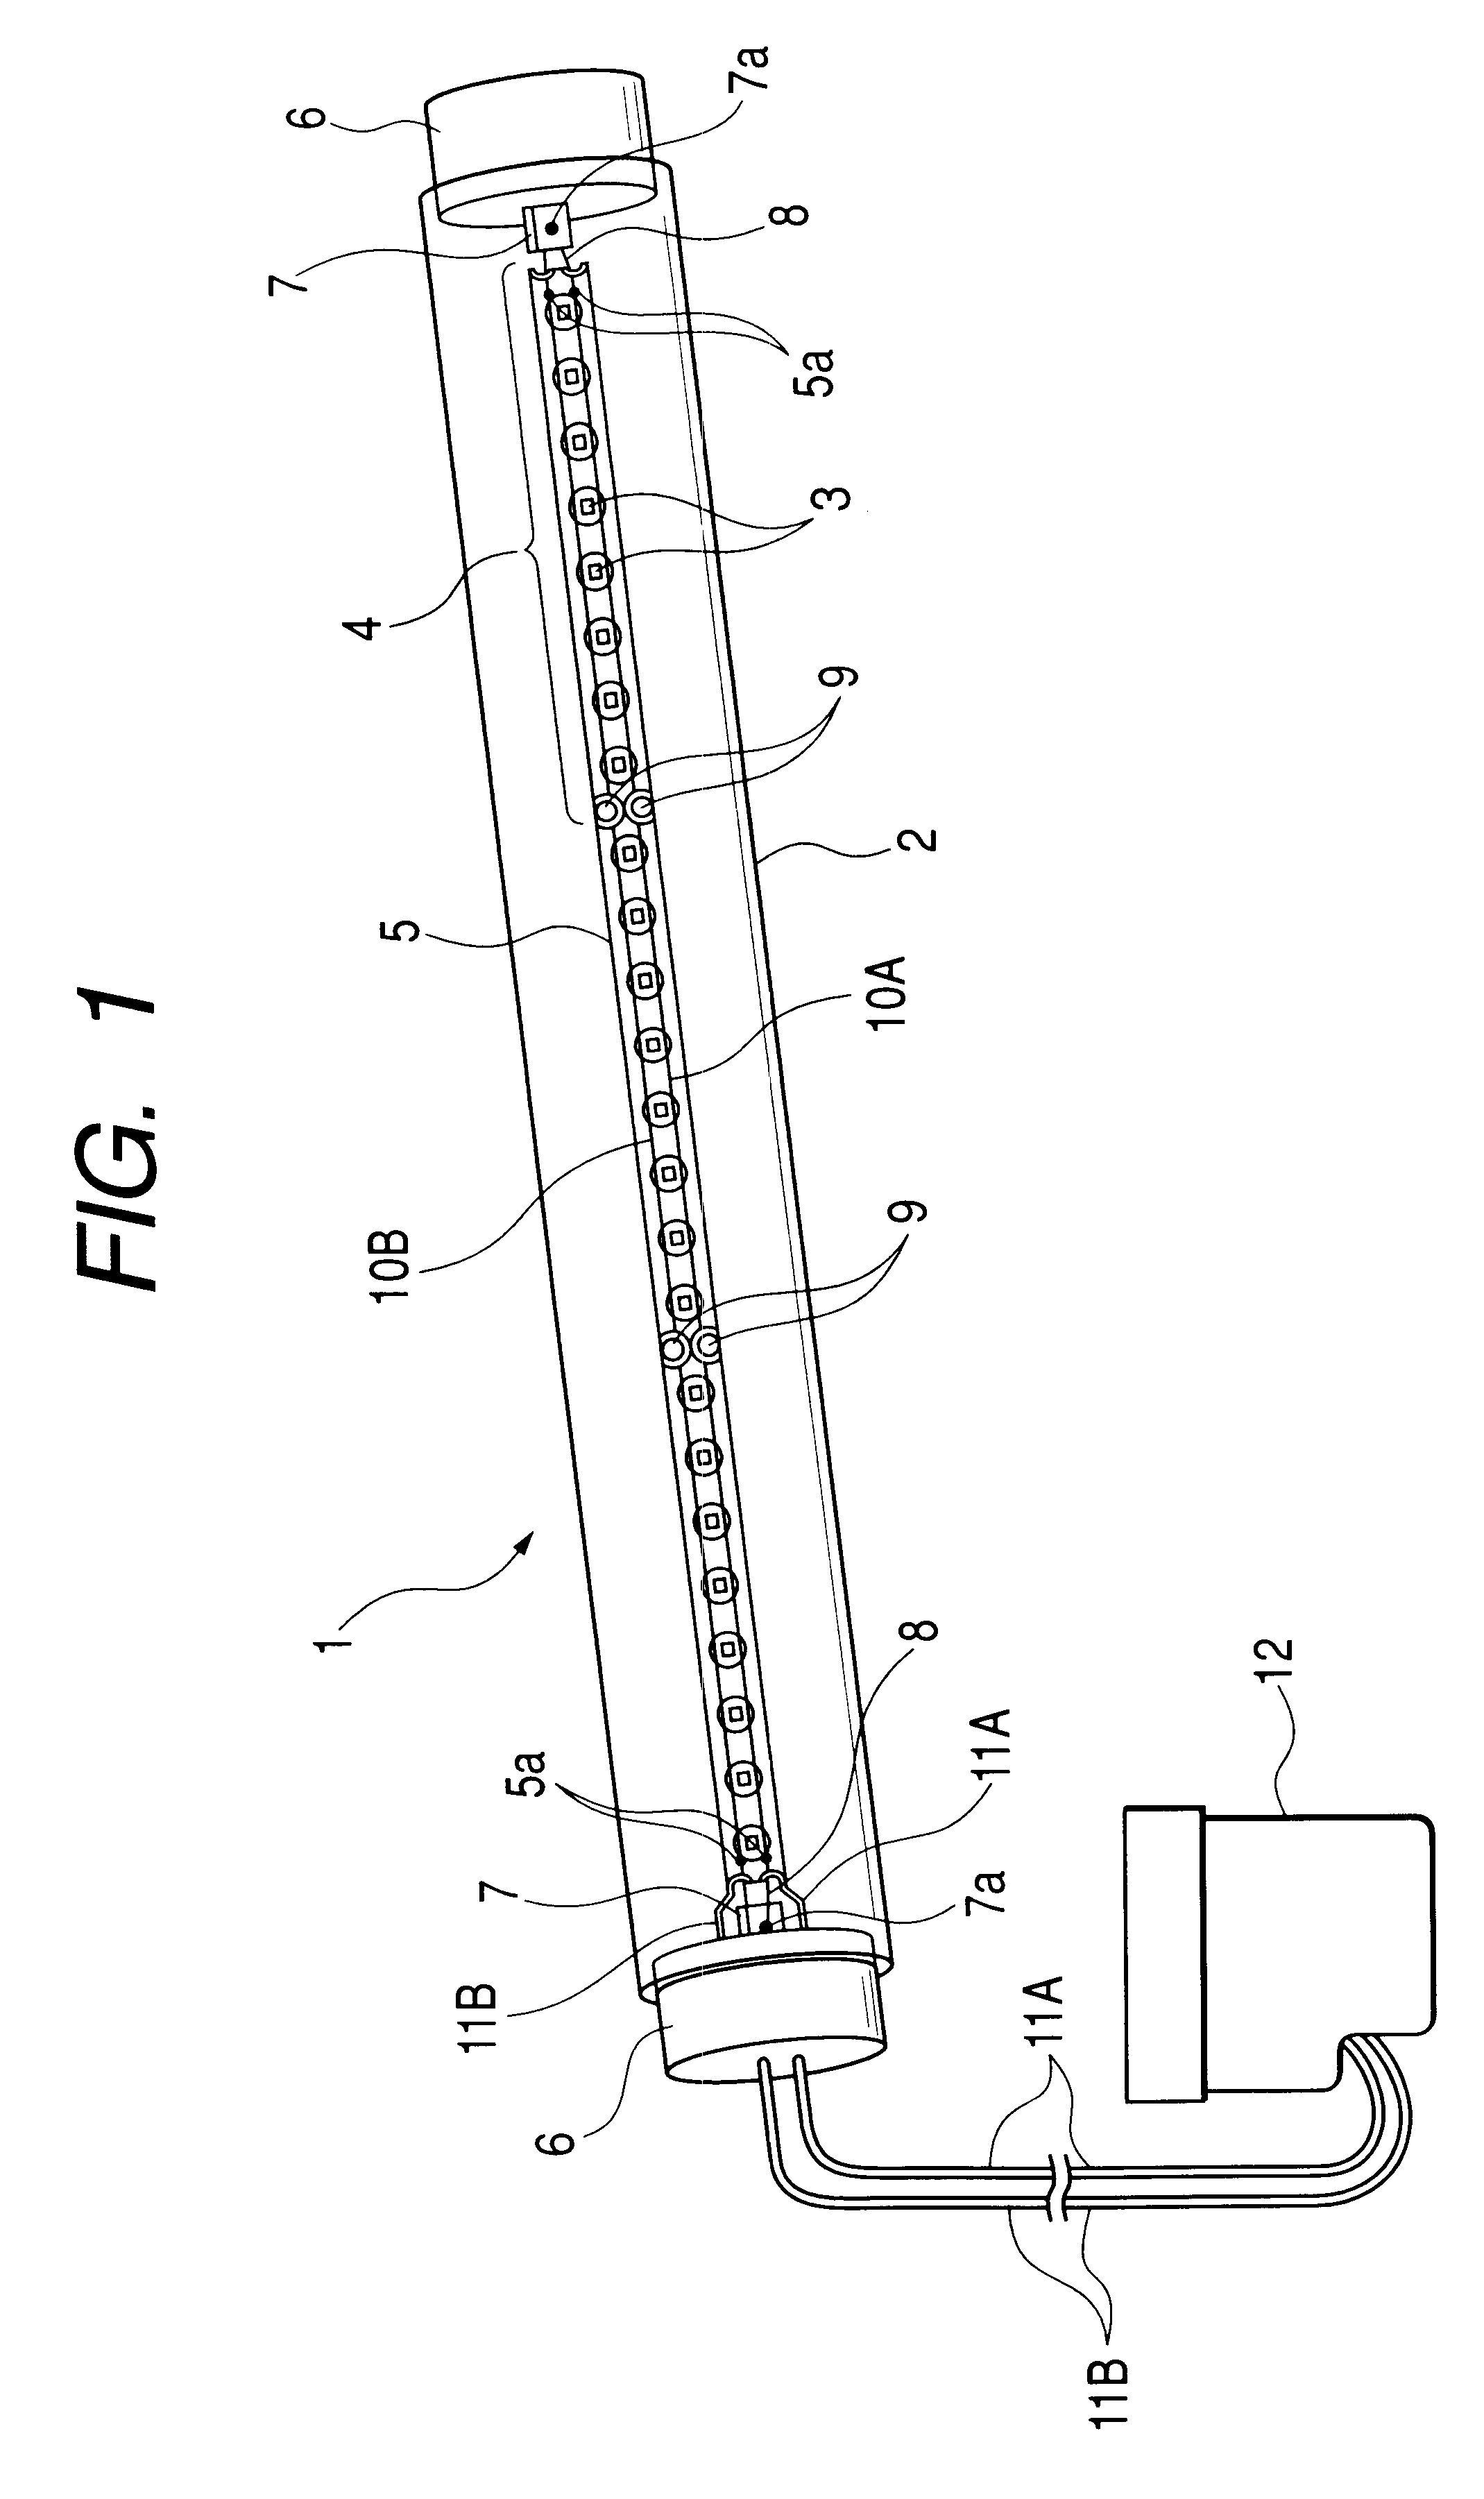 Fluorescent Tube Drawing Patent Us6583550 Fluorescent Tube With Light Emitting